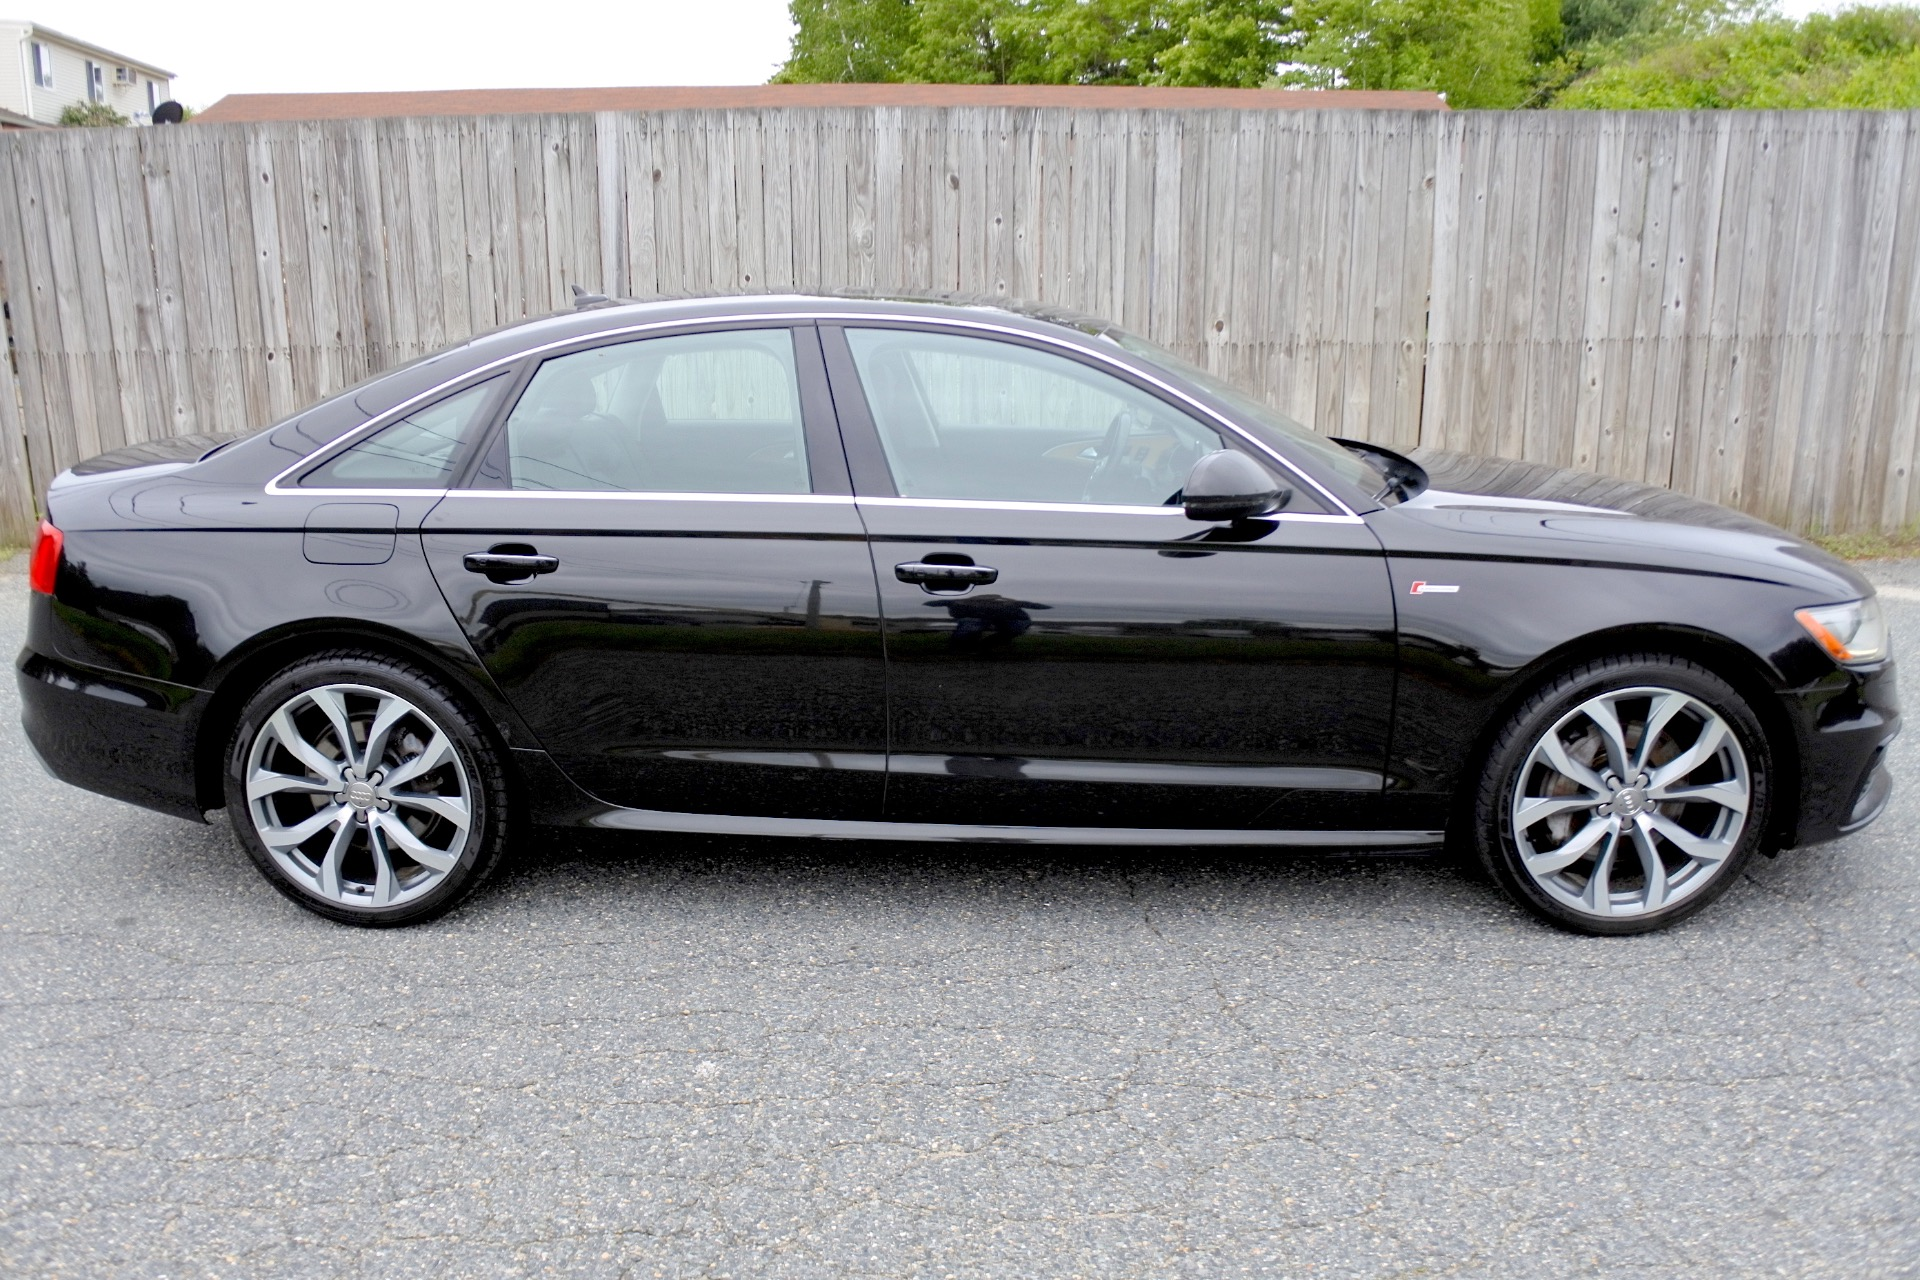 Used 2013 Audi A6 4dr Sdn quattro 3.0T Prestige Used 2013 Audi A6 4dr Sdn quattro 3.0T Prestige for sale  at Metro West Motorcars LLC in Shrewsbury MA 6